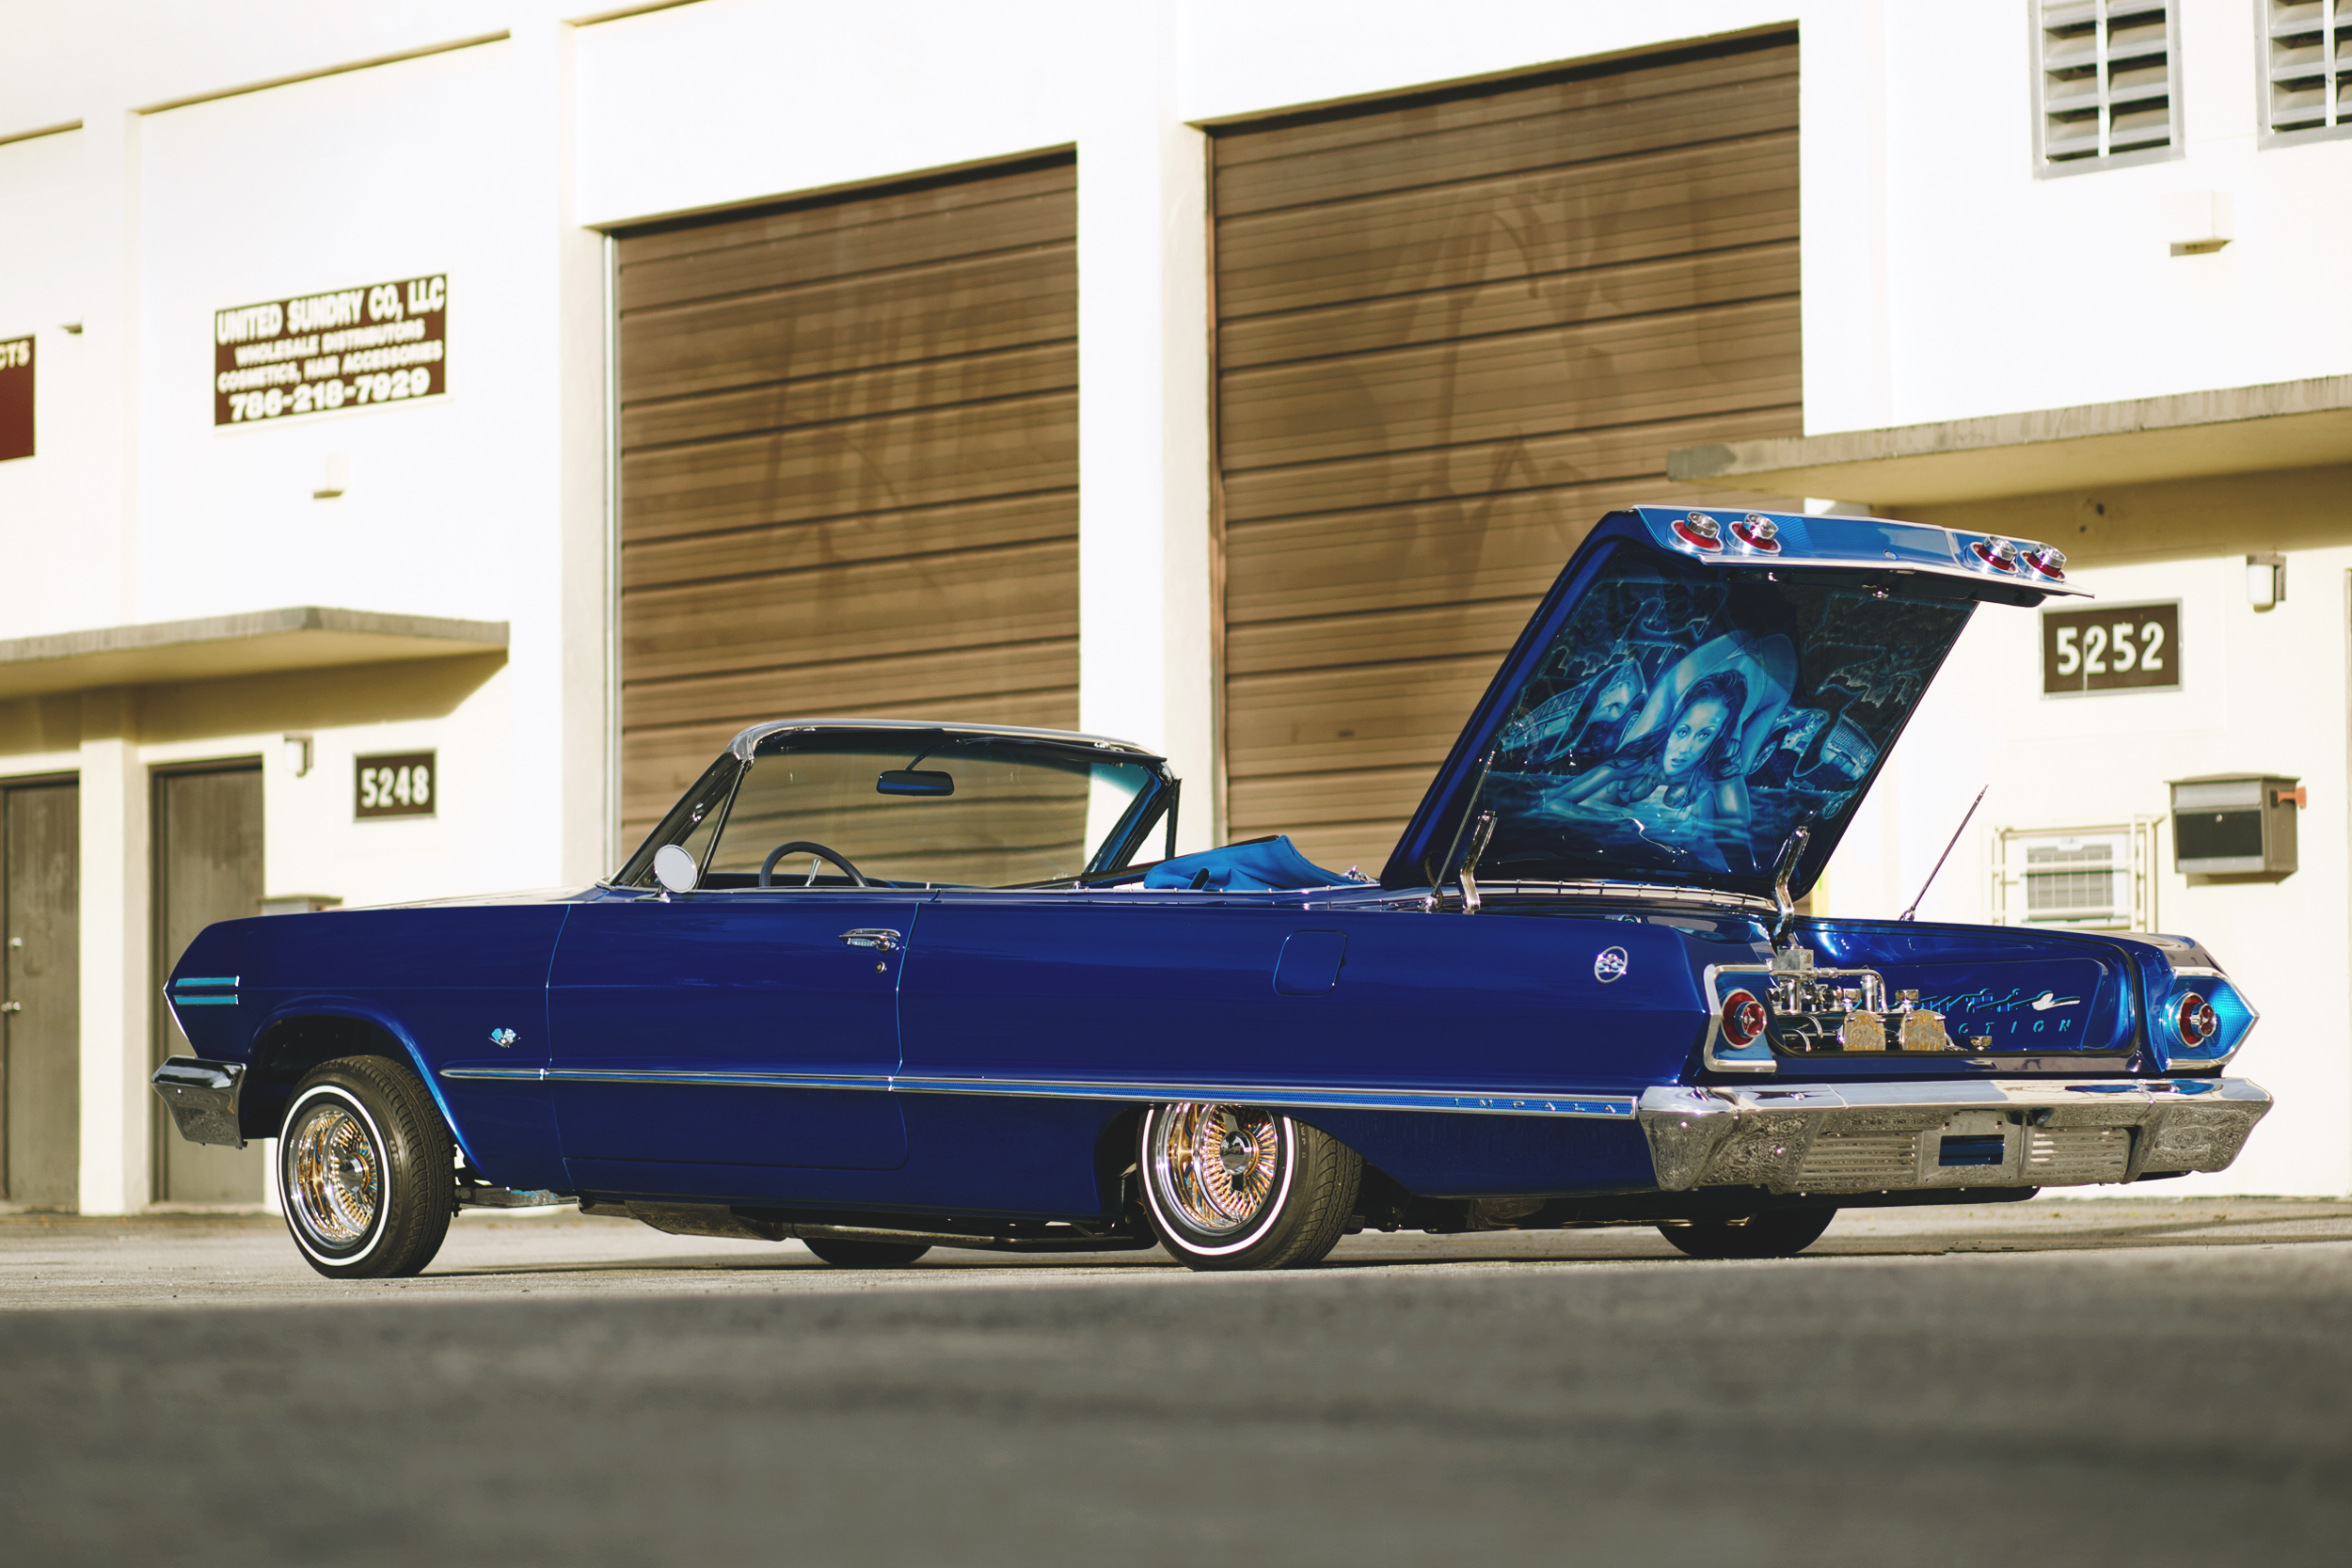 Lowrider Rims And Tires >> 1963 Chevrolet Impala SS w/ Video - Rides Magazine